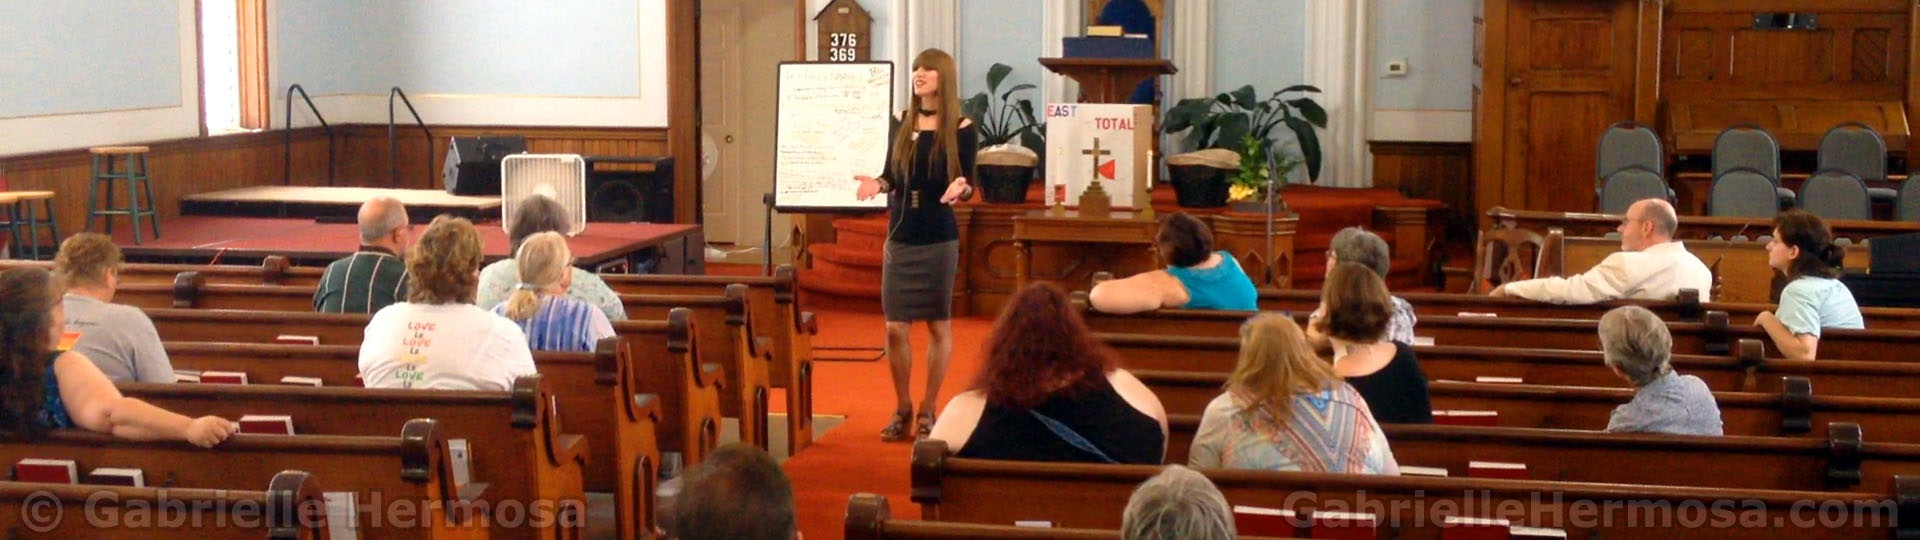 Gabrielle speaking in Church